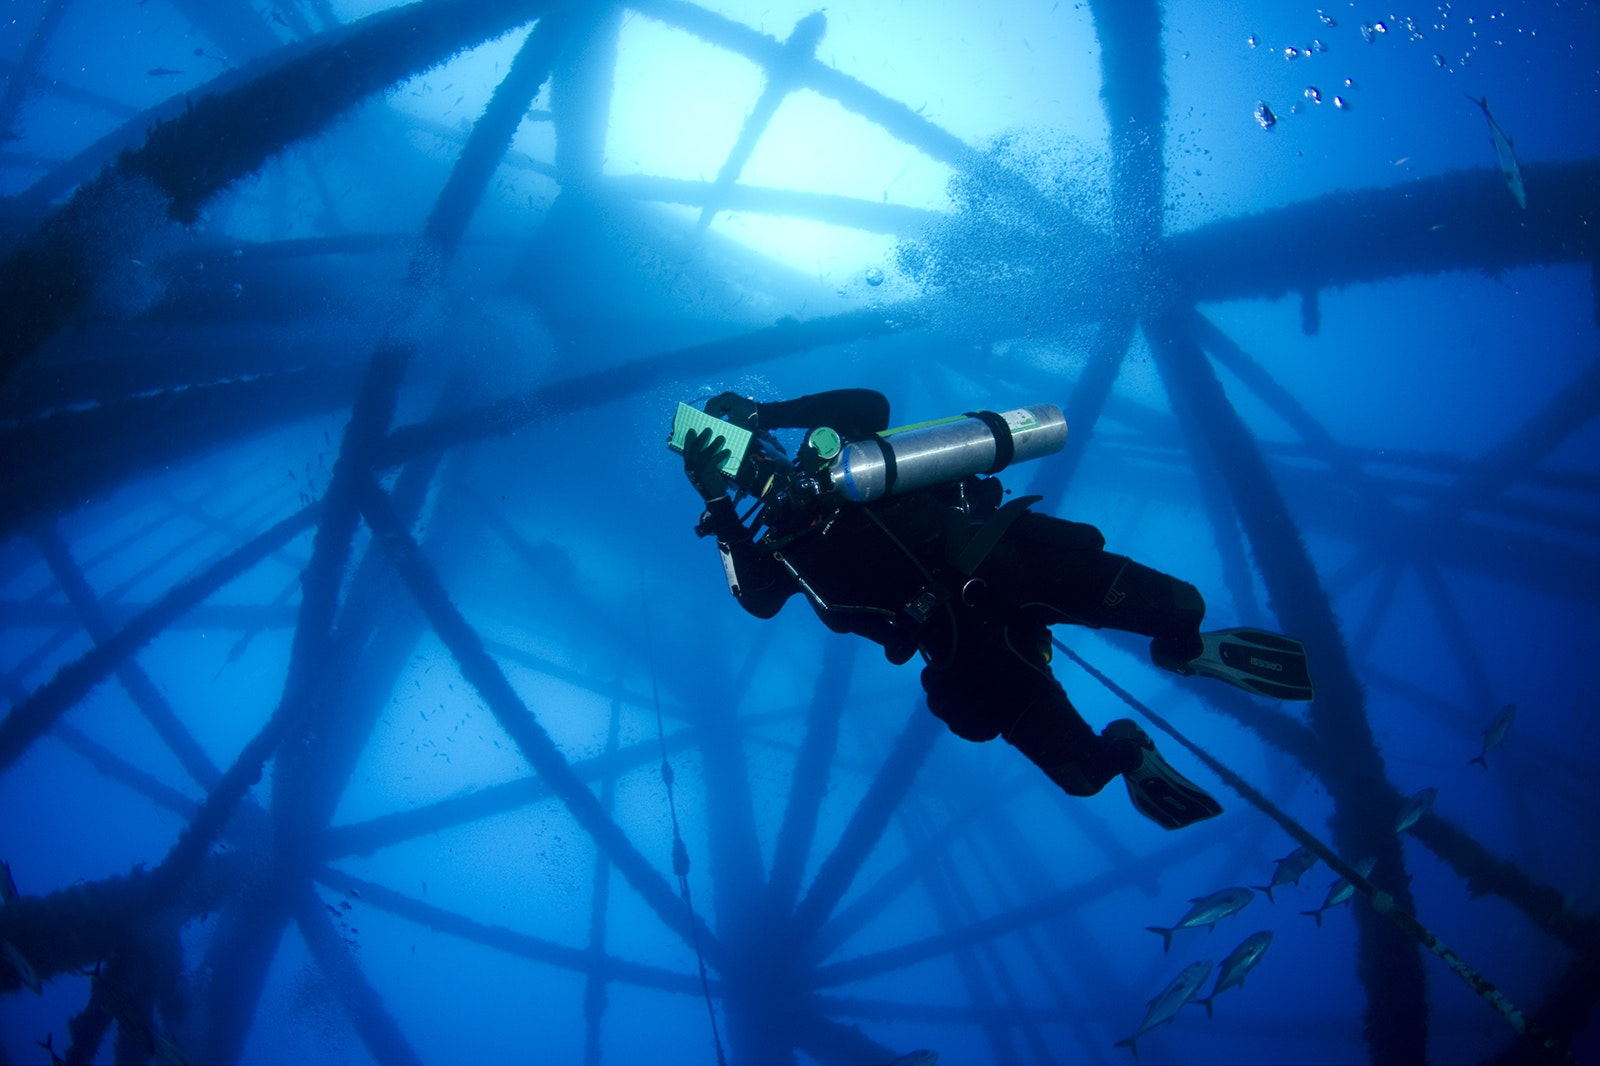 Platform HI-A-389 will be officially turned into an artificial reef this summer.